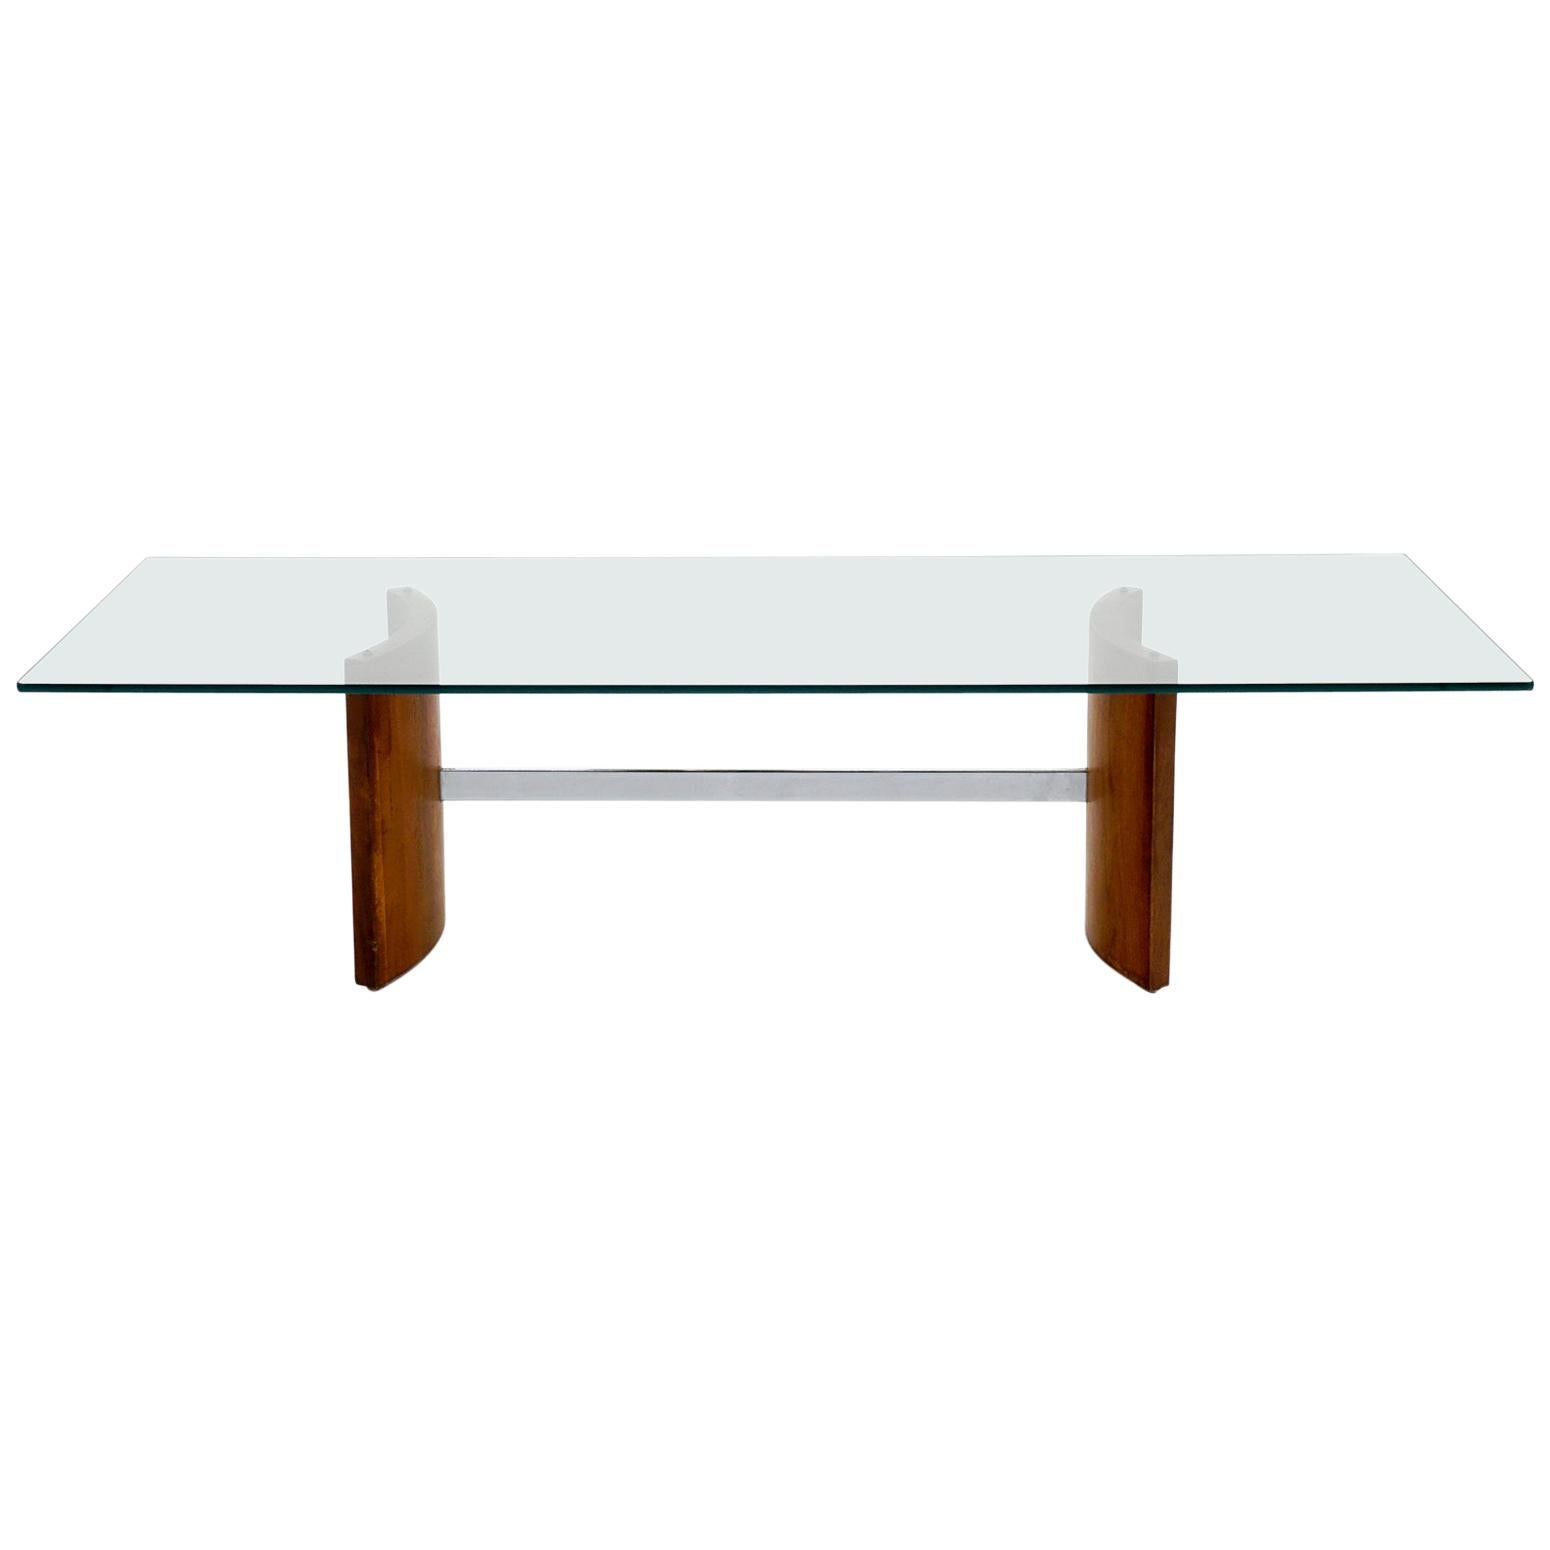 Walnut, Chrome and Glass Coffee Table by Selig, 1960s